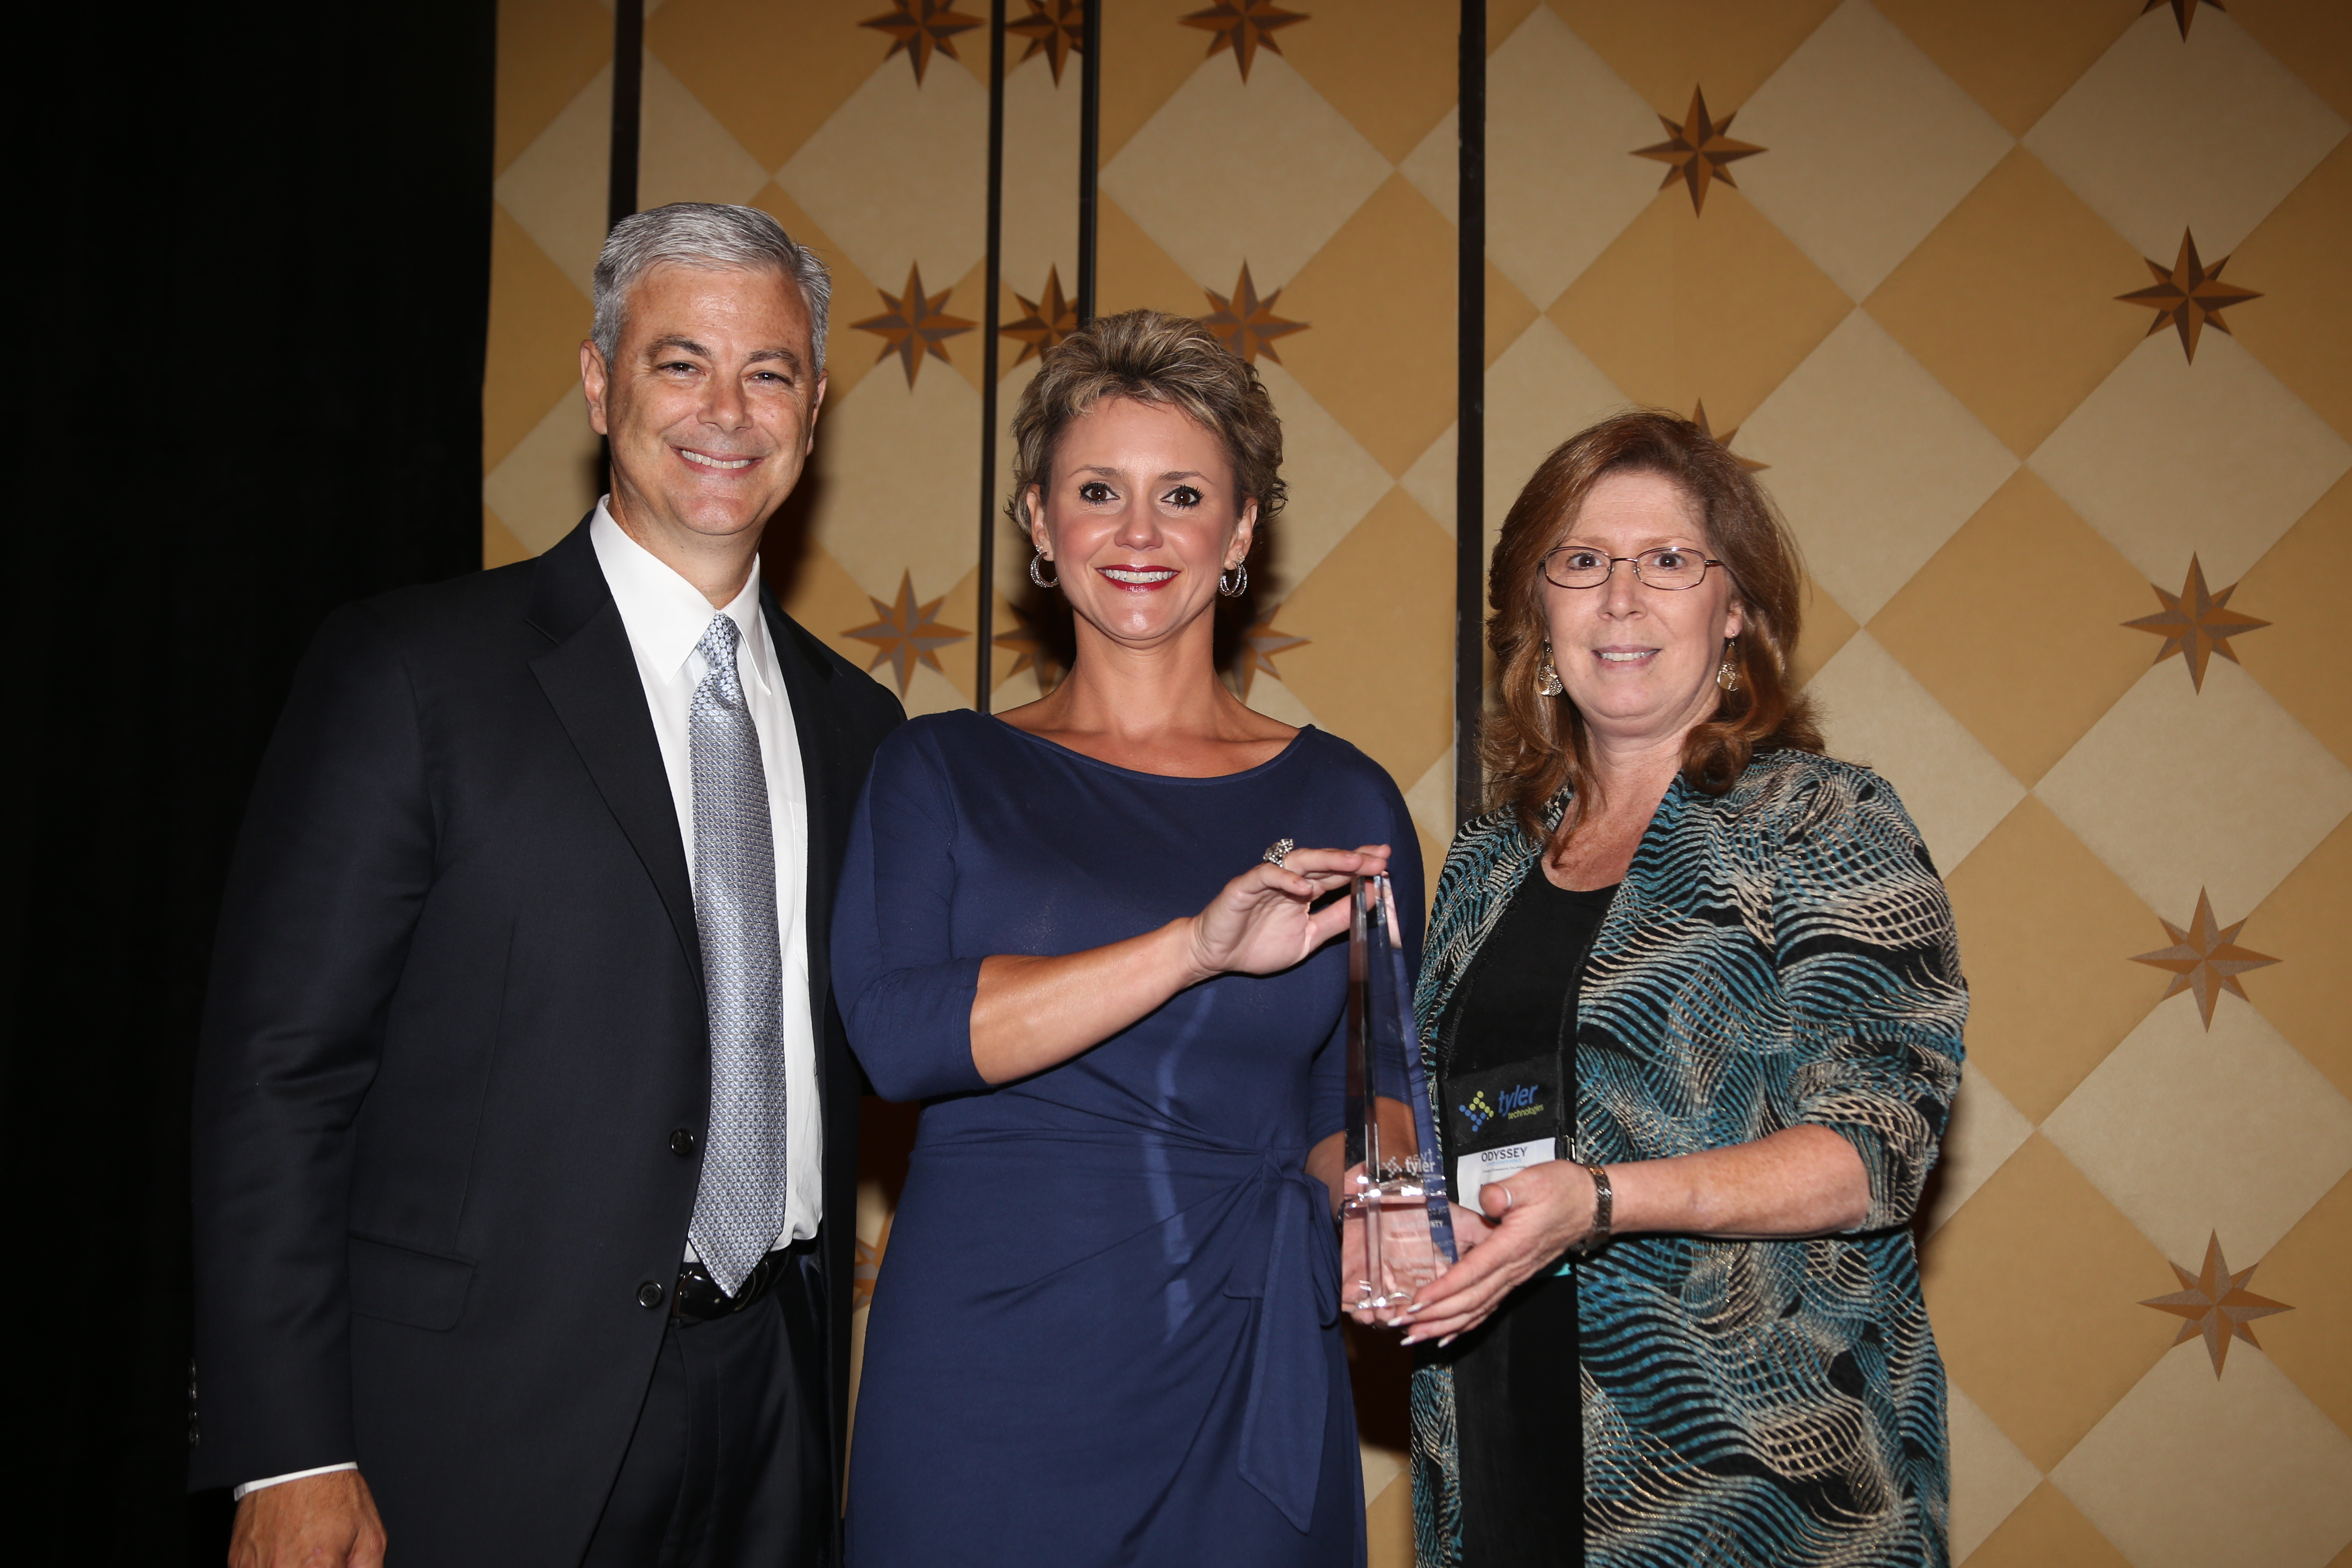 Bruce Graham, president of Tyler's Courts & Justice Division, presents a Tyler Public Sector Excellence Award to Denton County. (Photo: Business Wire)